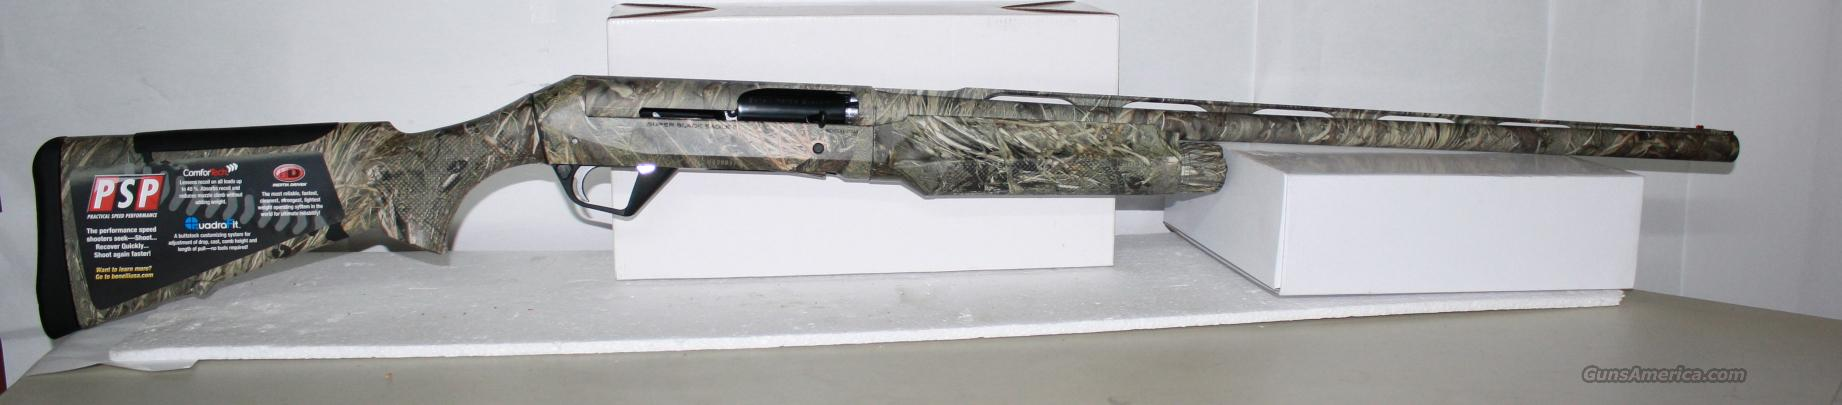 Benelli super black eagle 2 mossy oak duck blind